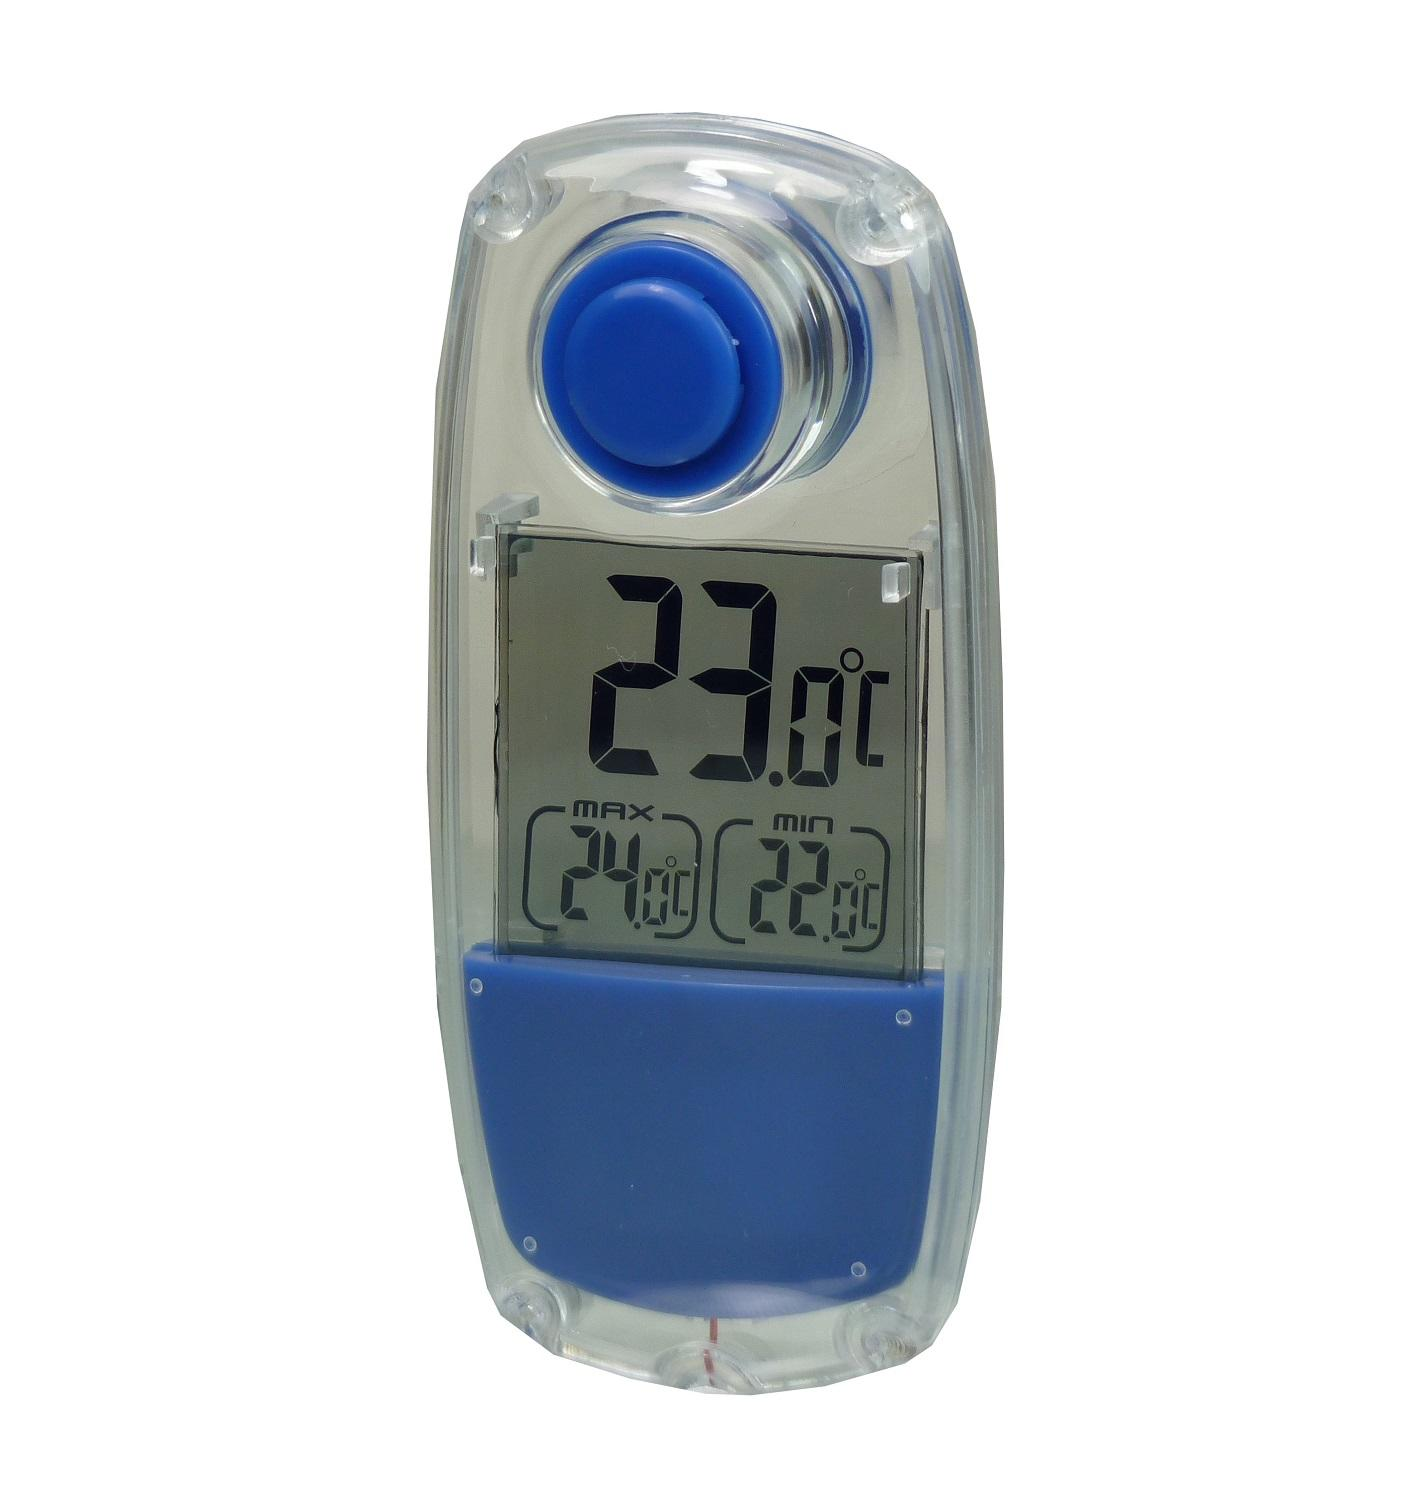 POWERplus Parrot Solar Outdoor and Indoor Thermometer